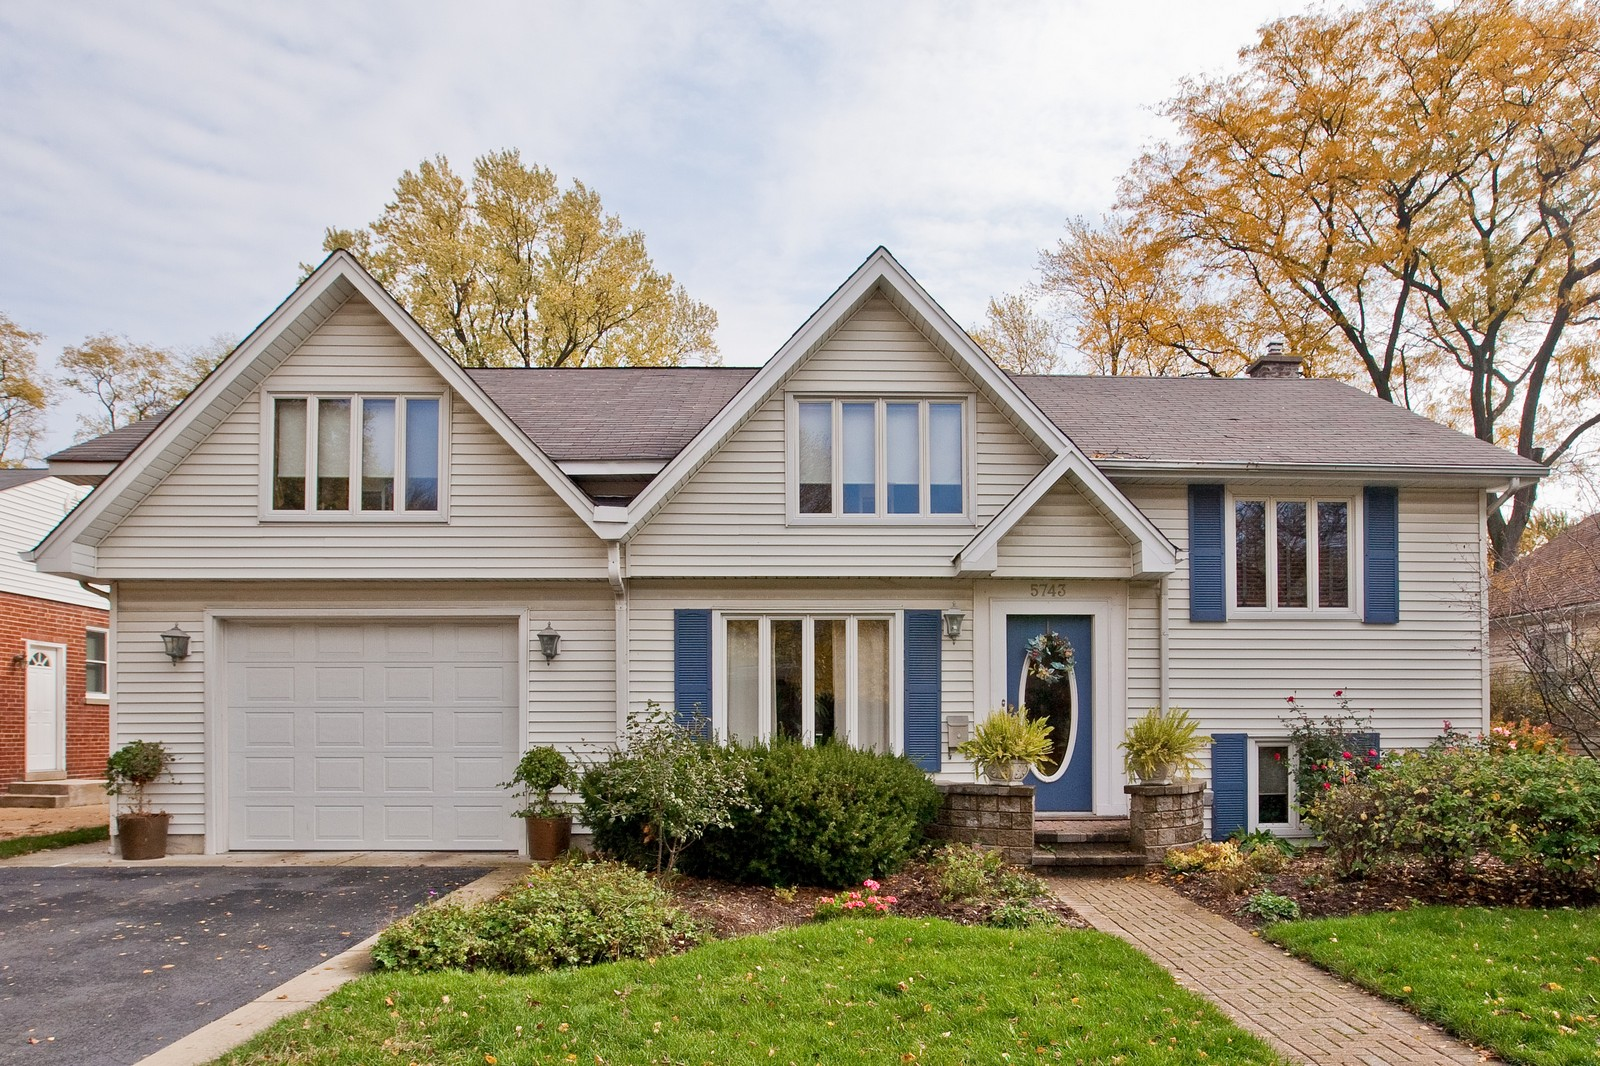 Real Estate Photography - 5743 Hillcrest Rd, Downers Grove, IL, 60516 - Front View